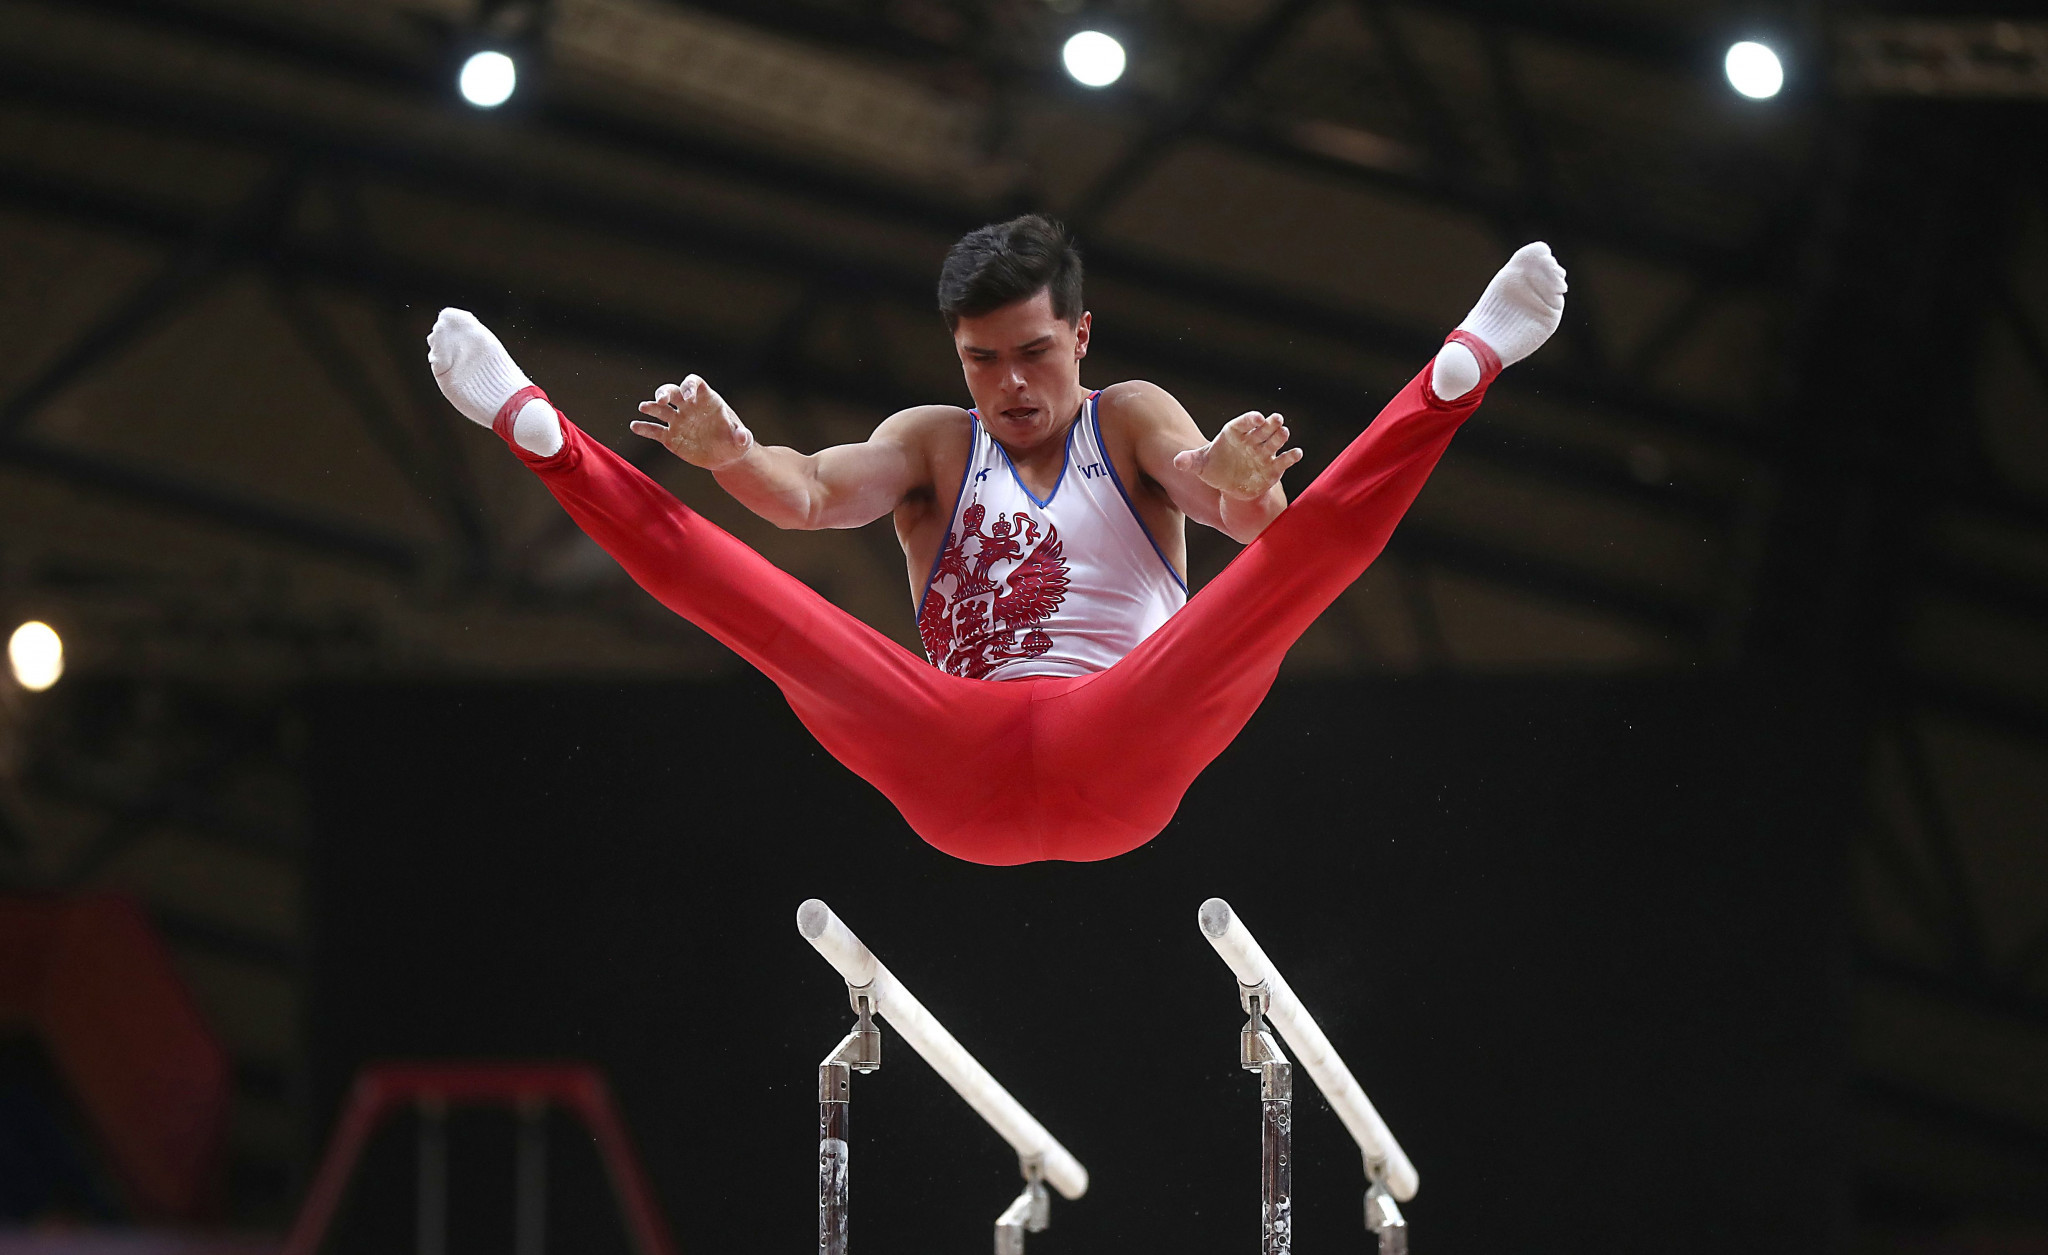 Artur Dalaloyan became the first Russian to win an all-around world title in nearly 20 years ©Getty Images